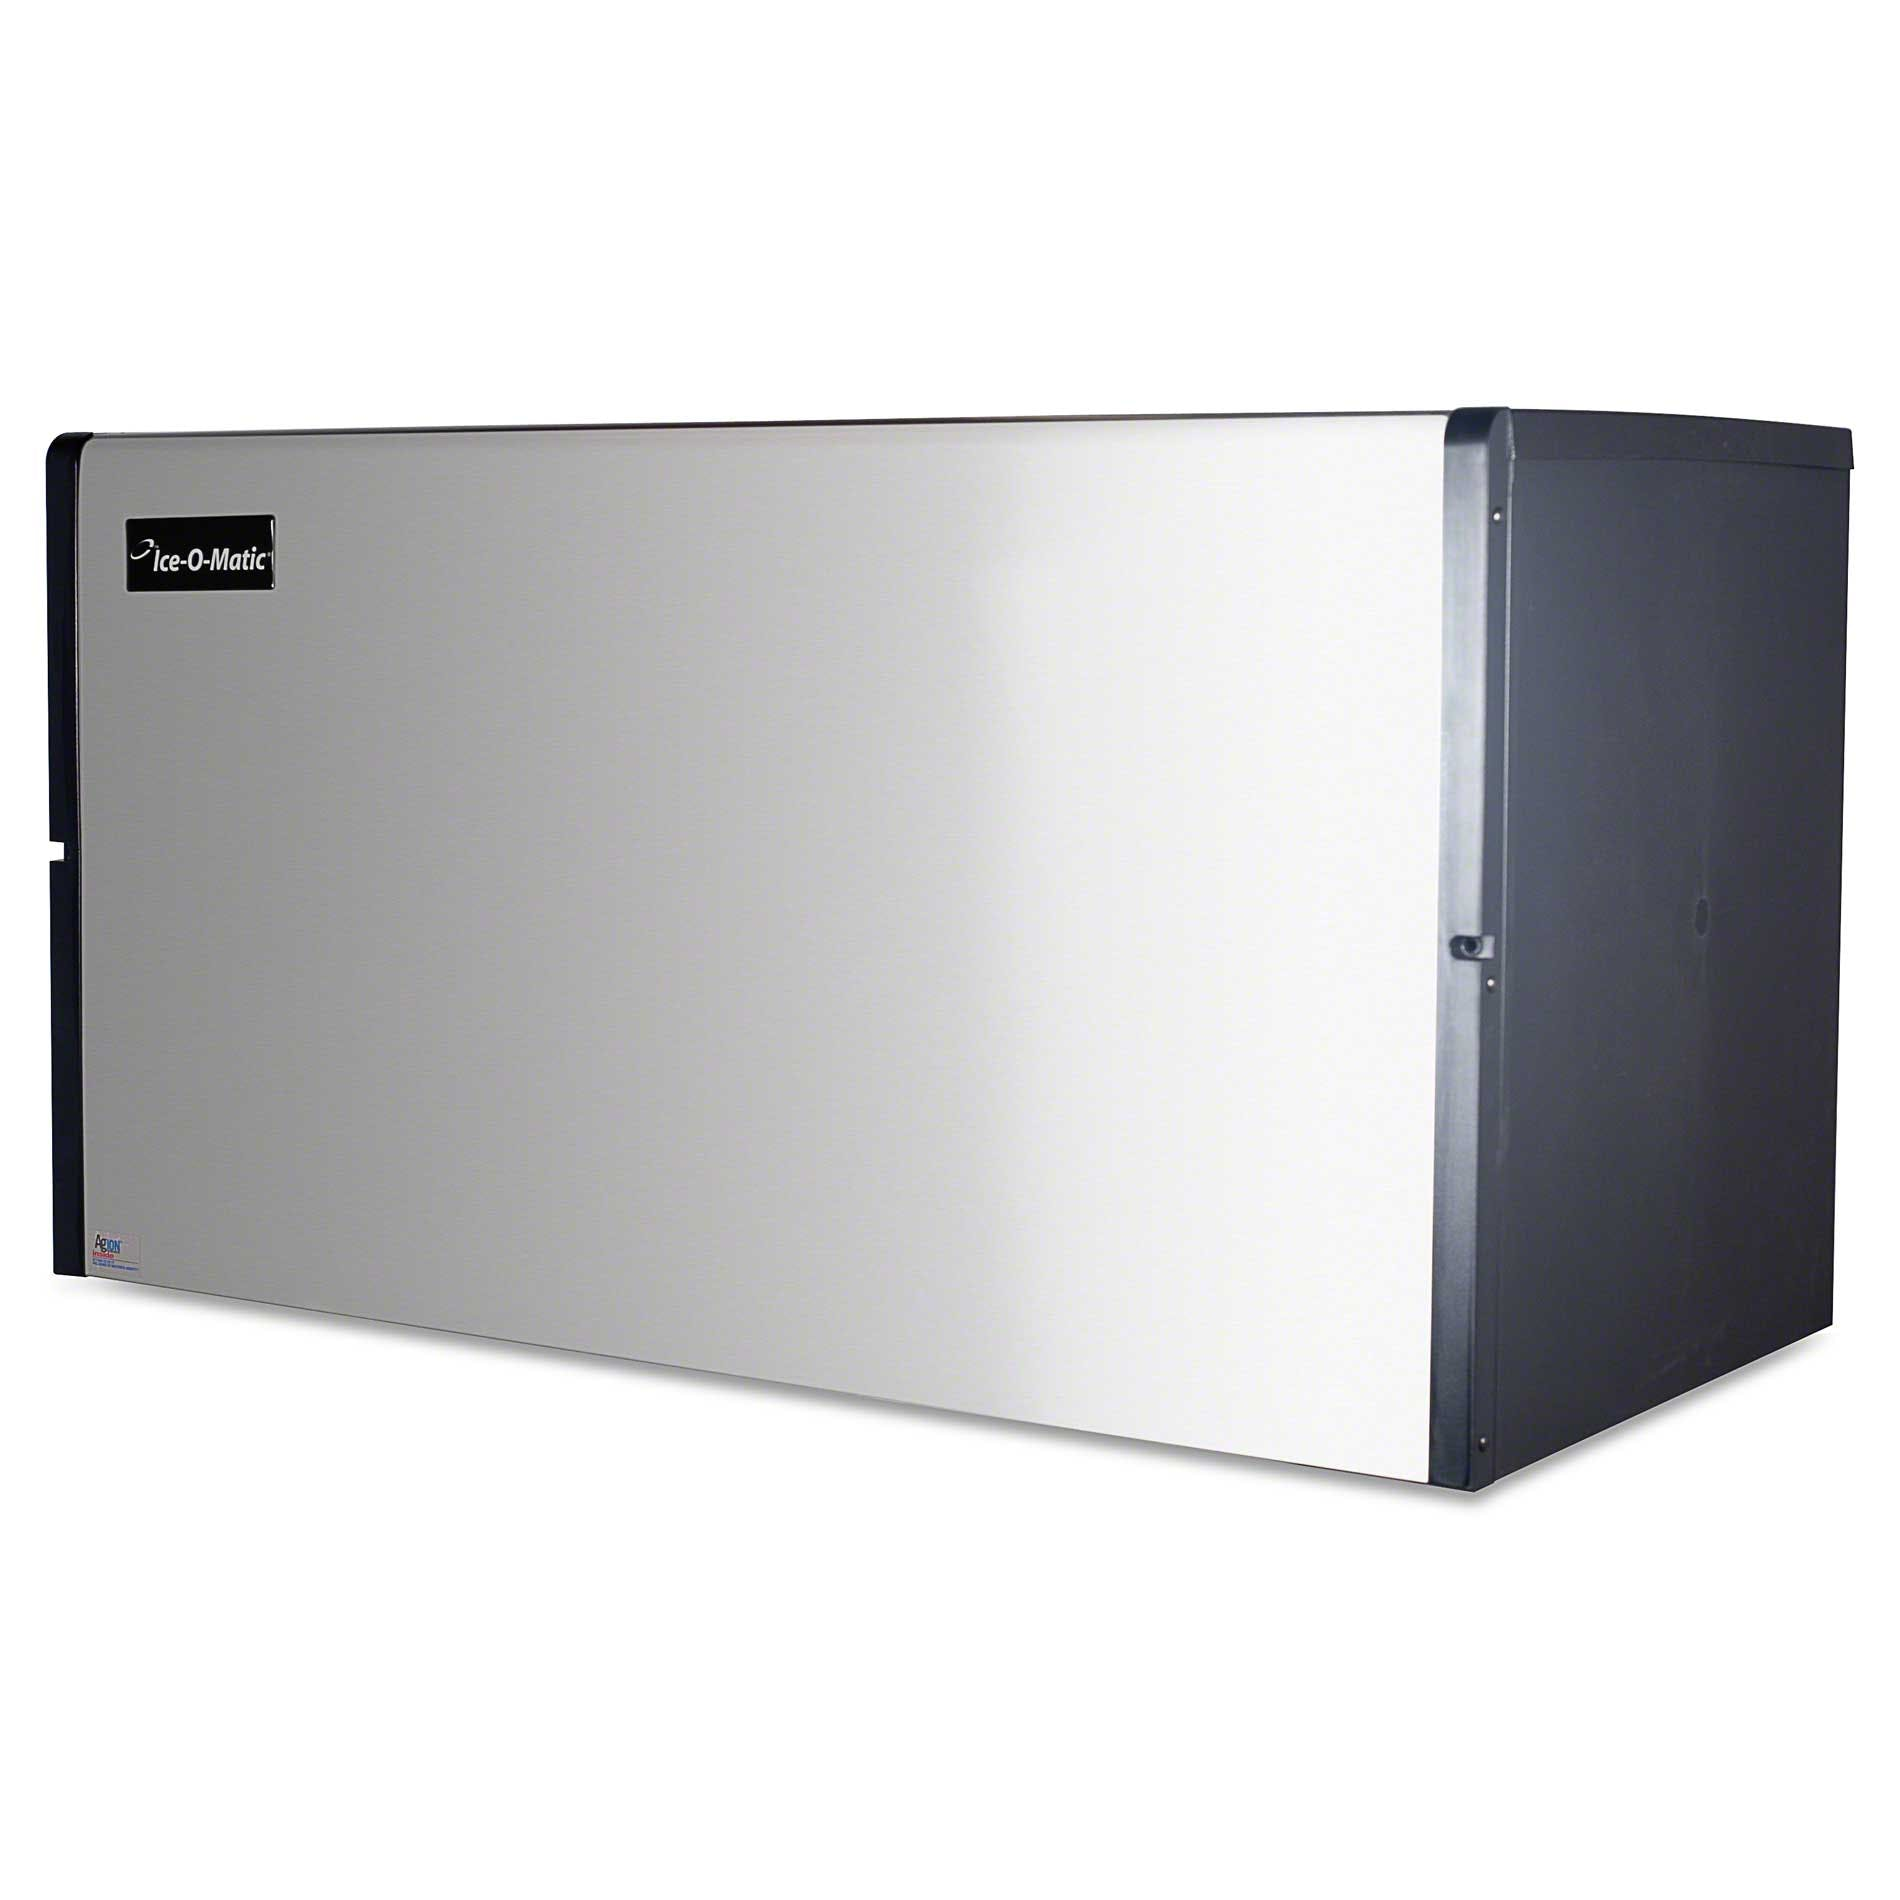 Ice-O-Matic - ICE2106HR 1737 lb Half Cube Ice Machine - sold by Food Service Warehouse